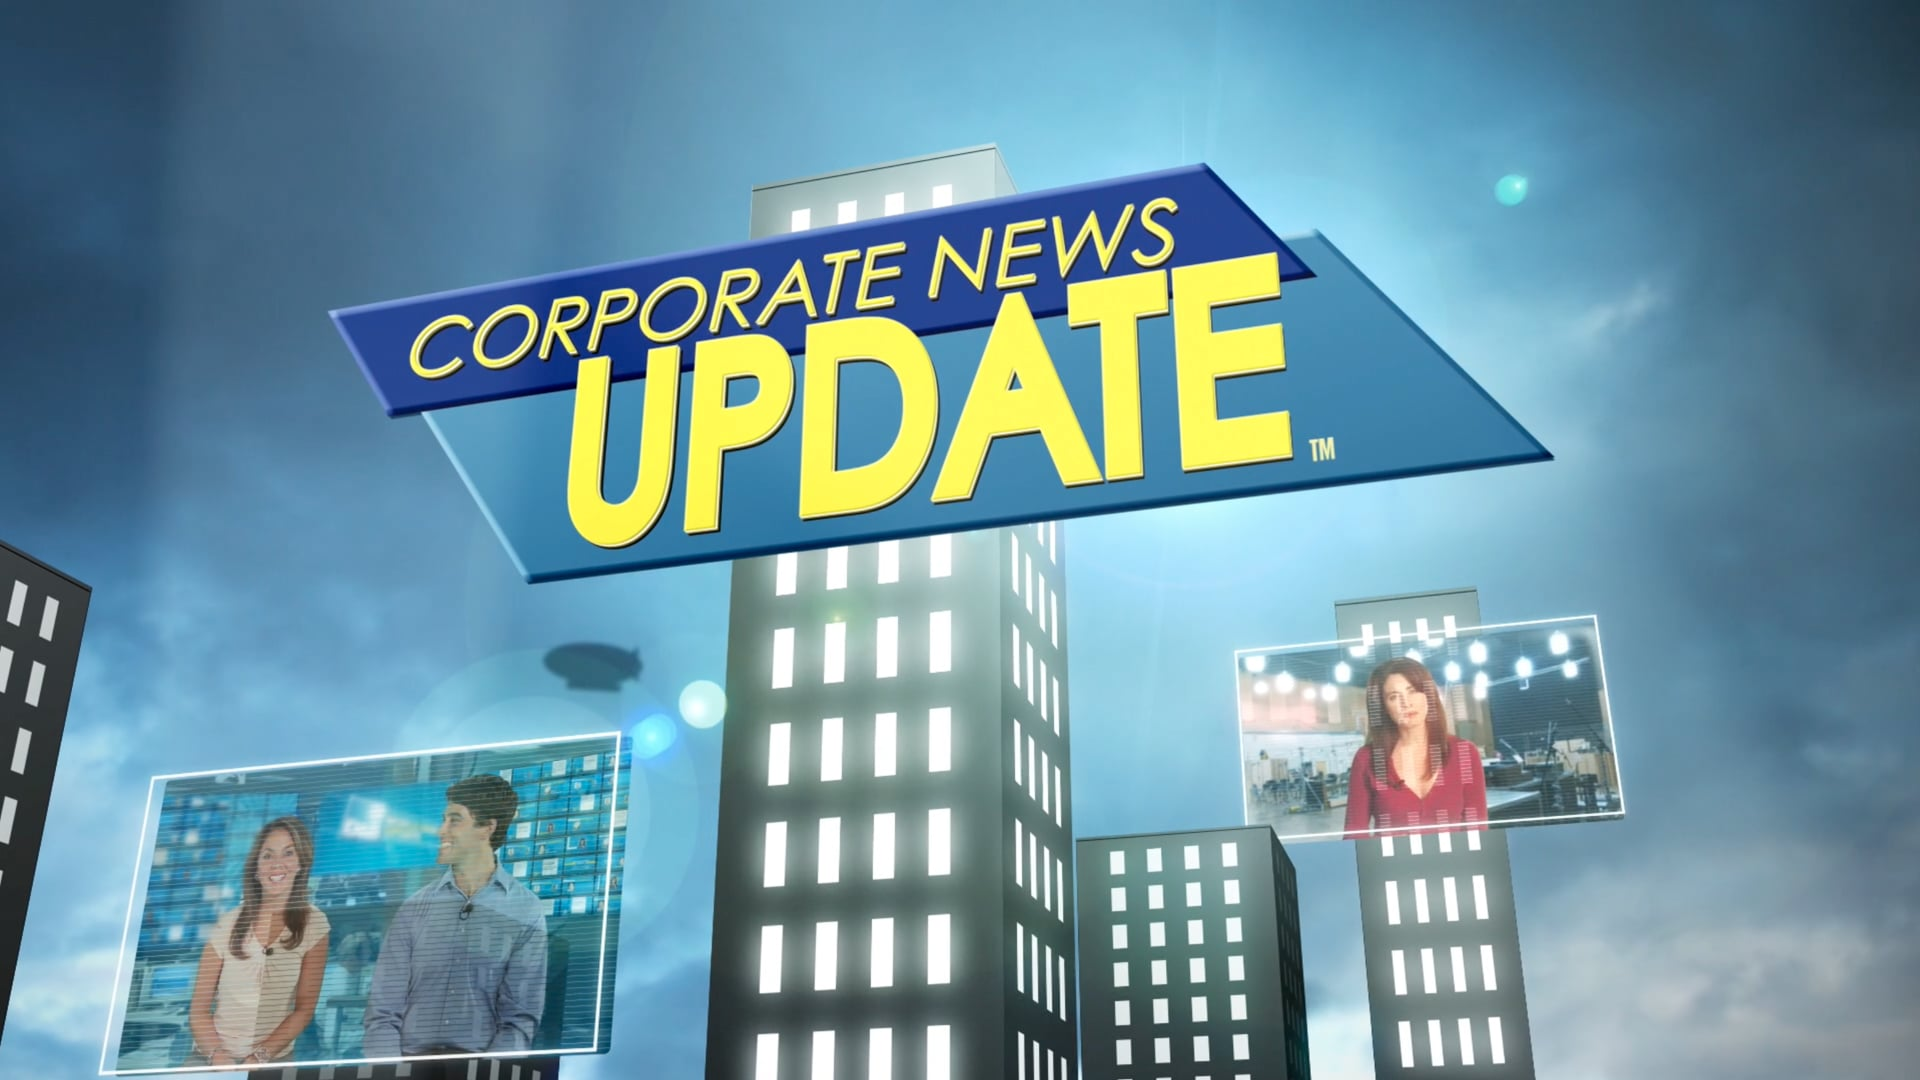 Reach Your Employees - Corporate News Update